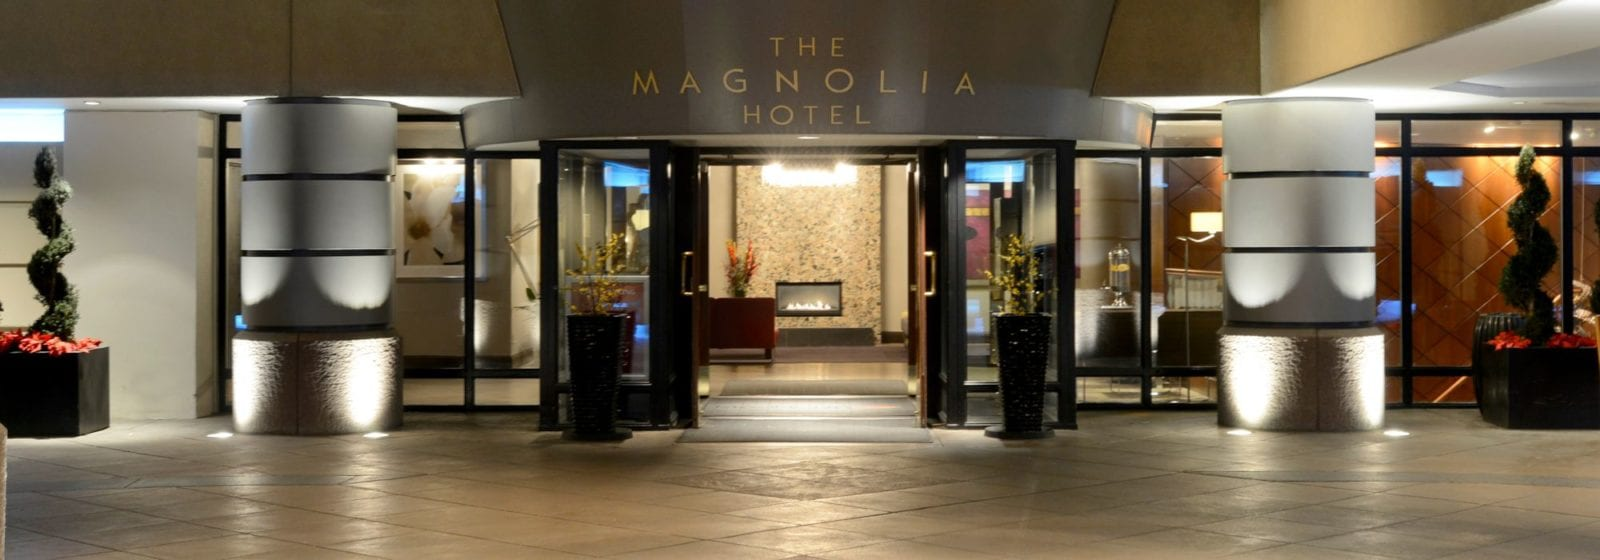 Magnolia Hotel Entrance Denver CO